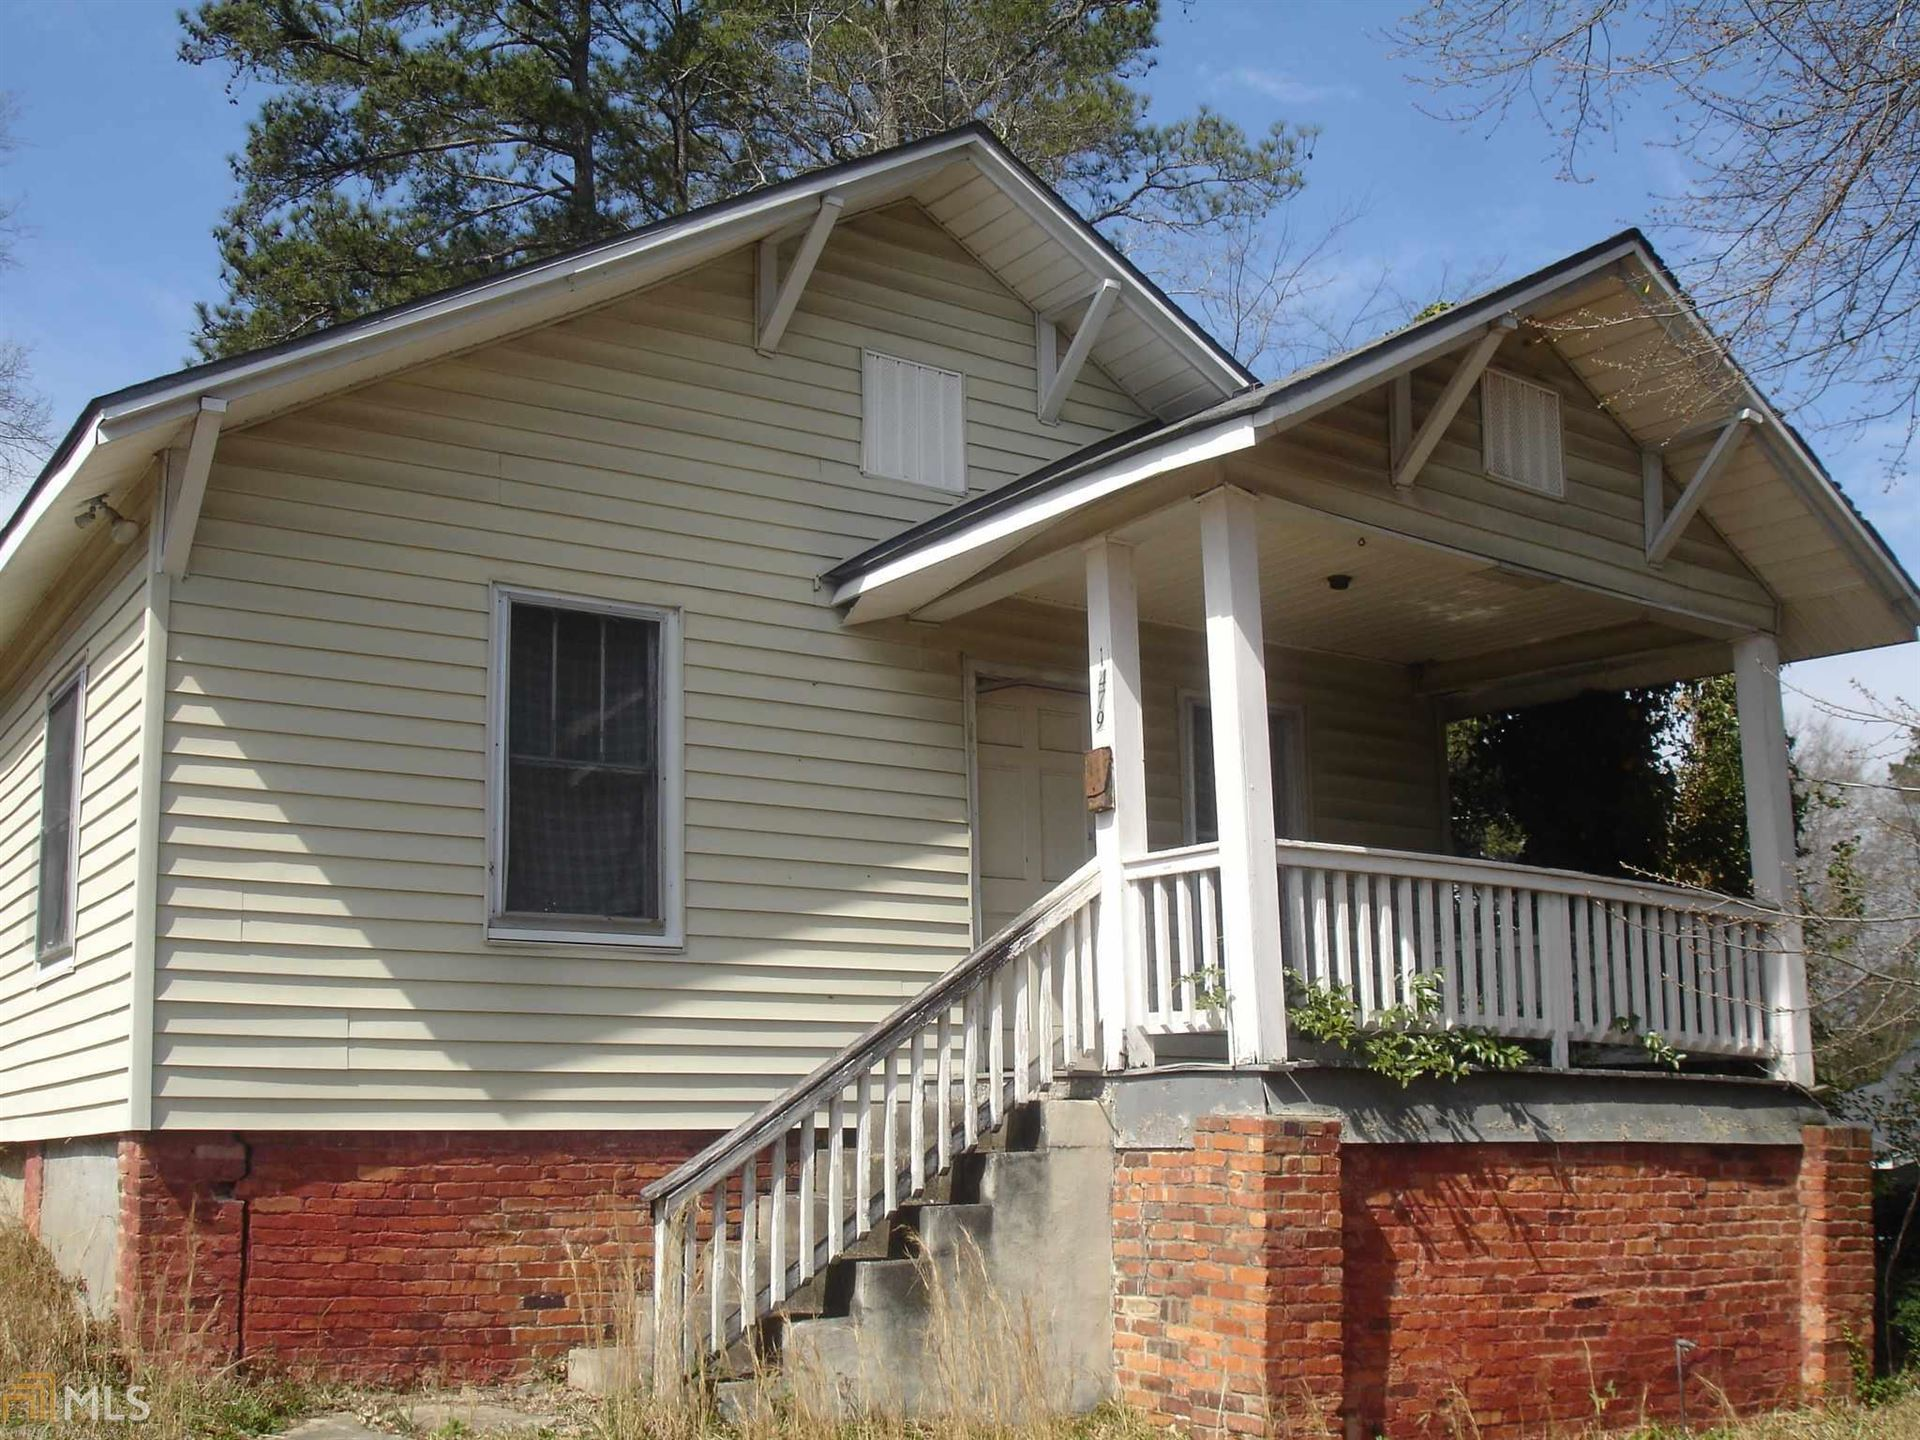 1479 Bailey Ave, Macon, GA 31204 - MLS#: 8942463